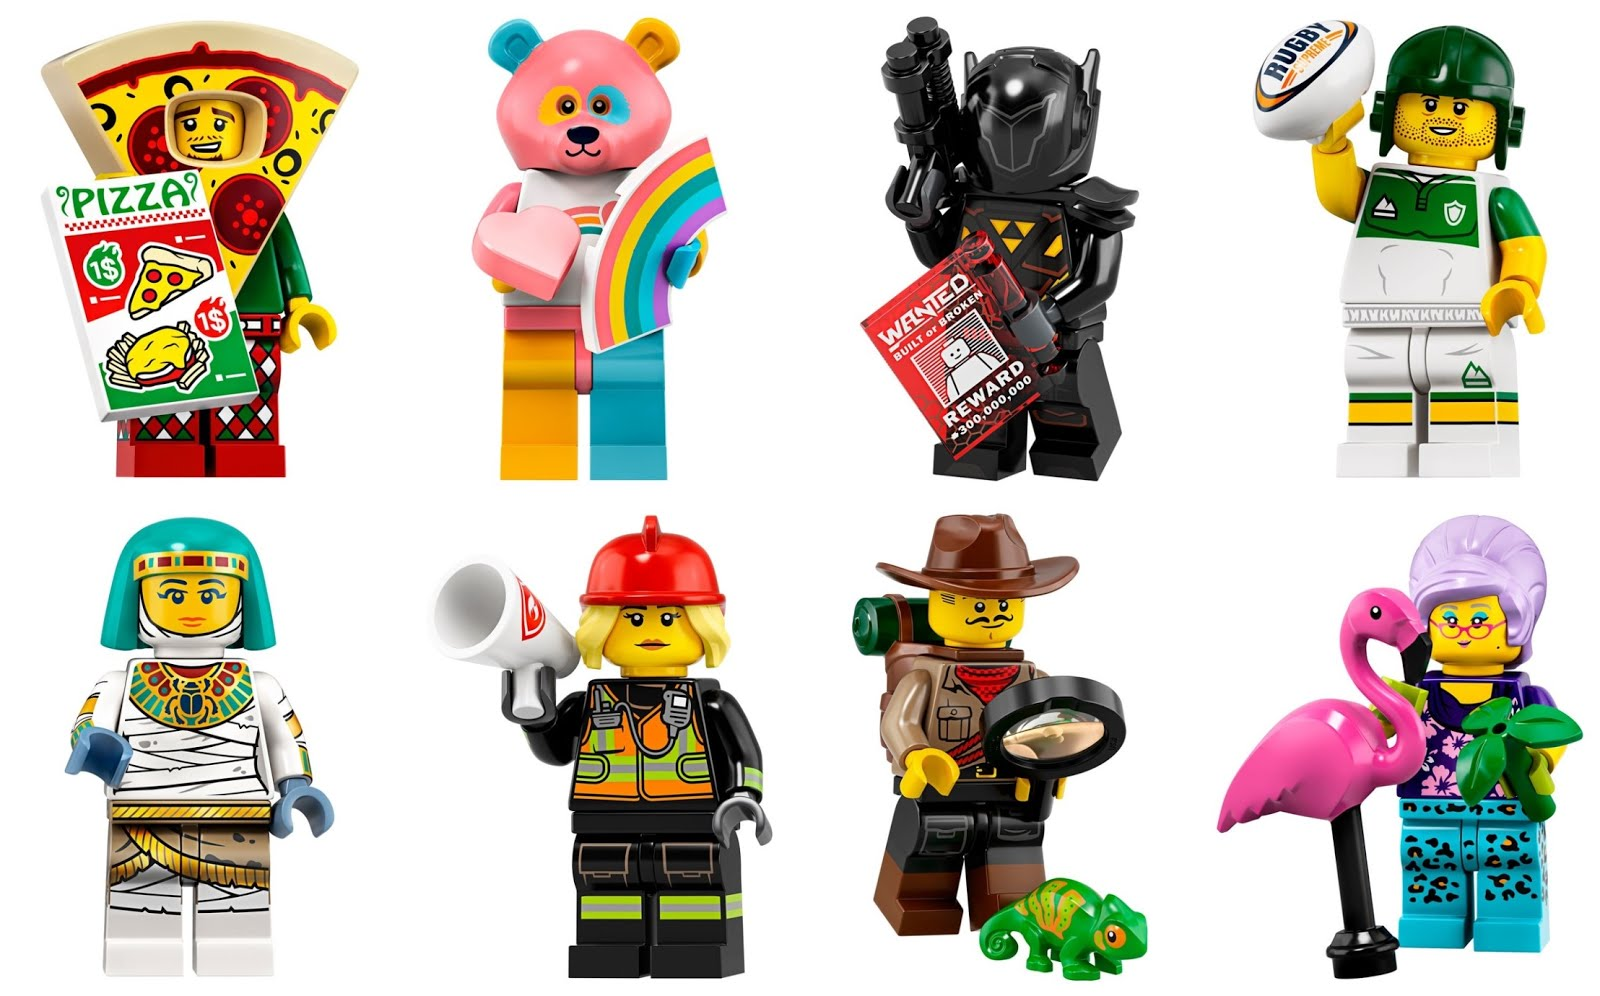 Shower Guy NEW Lego 71025 Minifigures Series 19